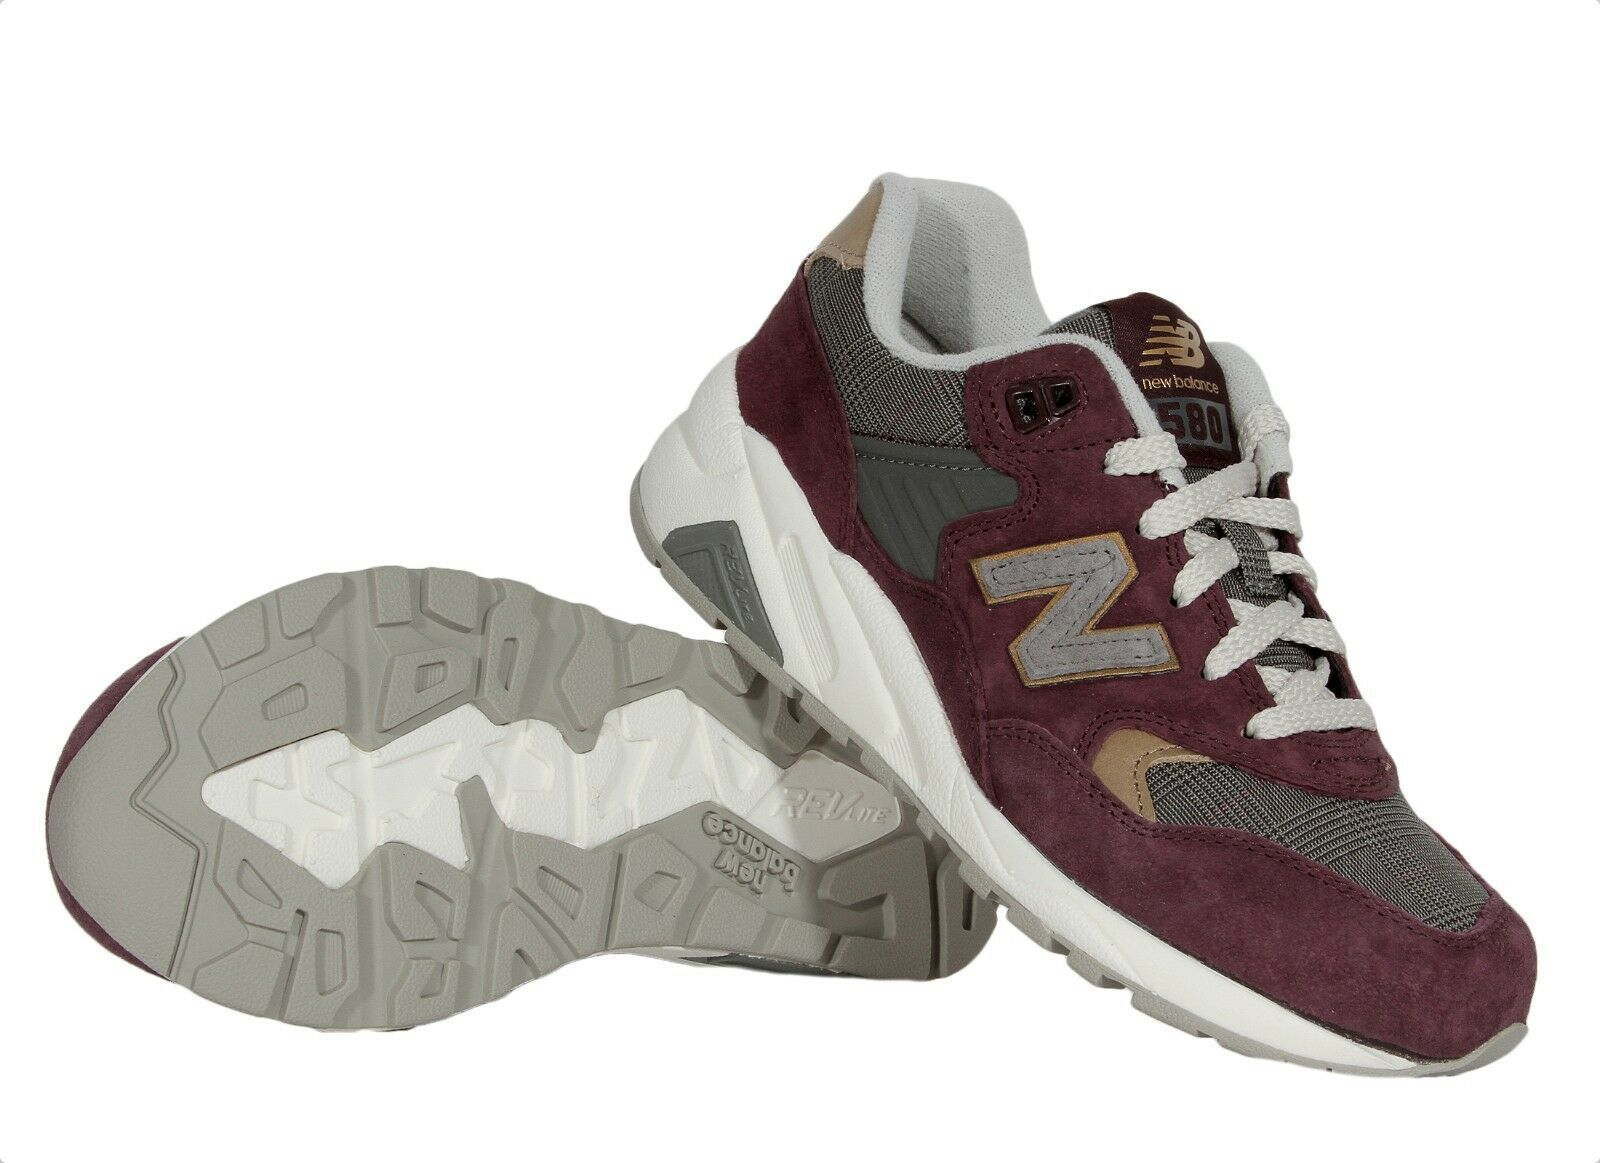 New Balance Femme 580 Classic Sneakers Chaussures WRT580WE Suede Medium (B, M)